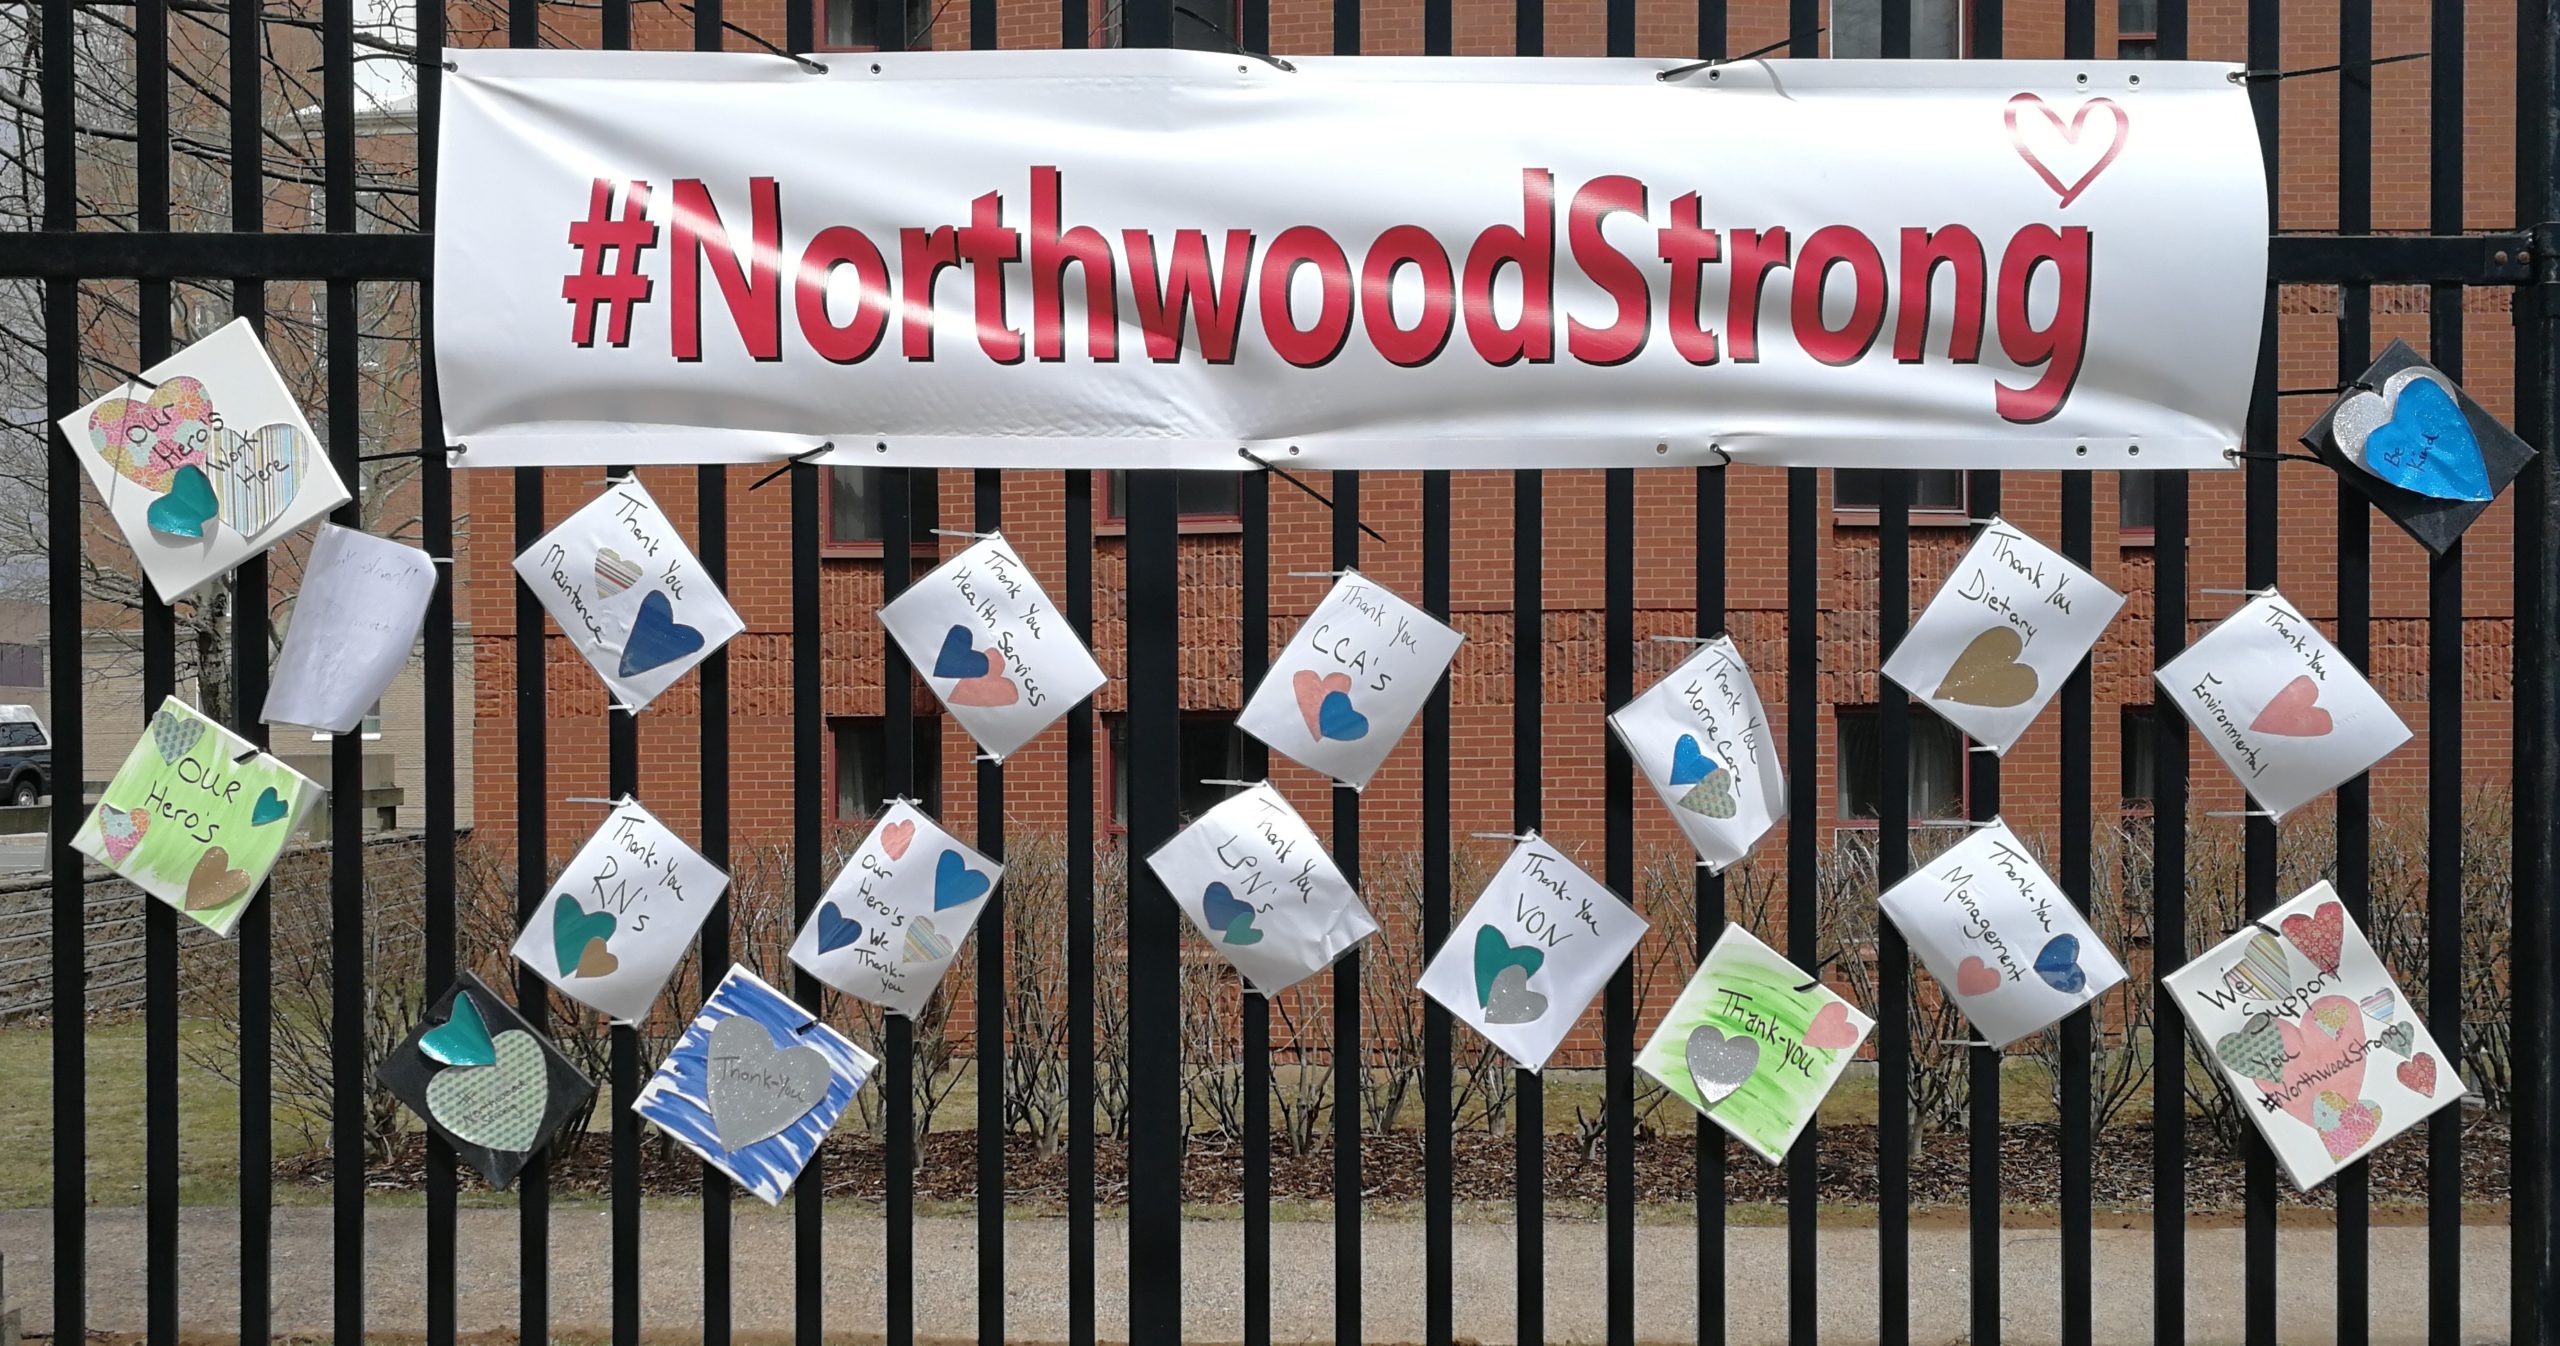 Northwood strong banner attached to a fence.